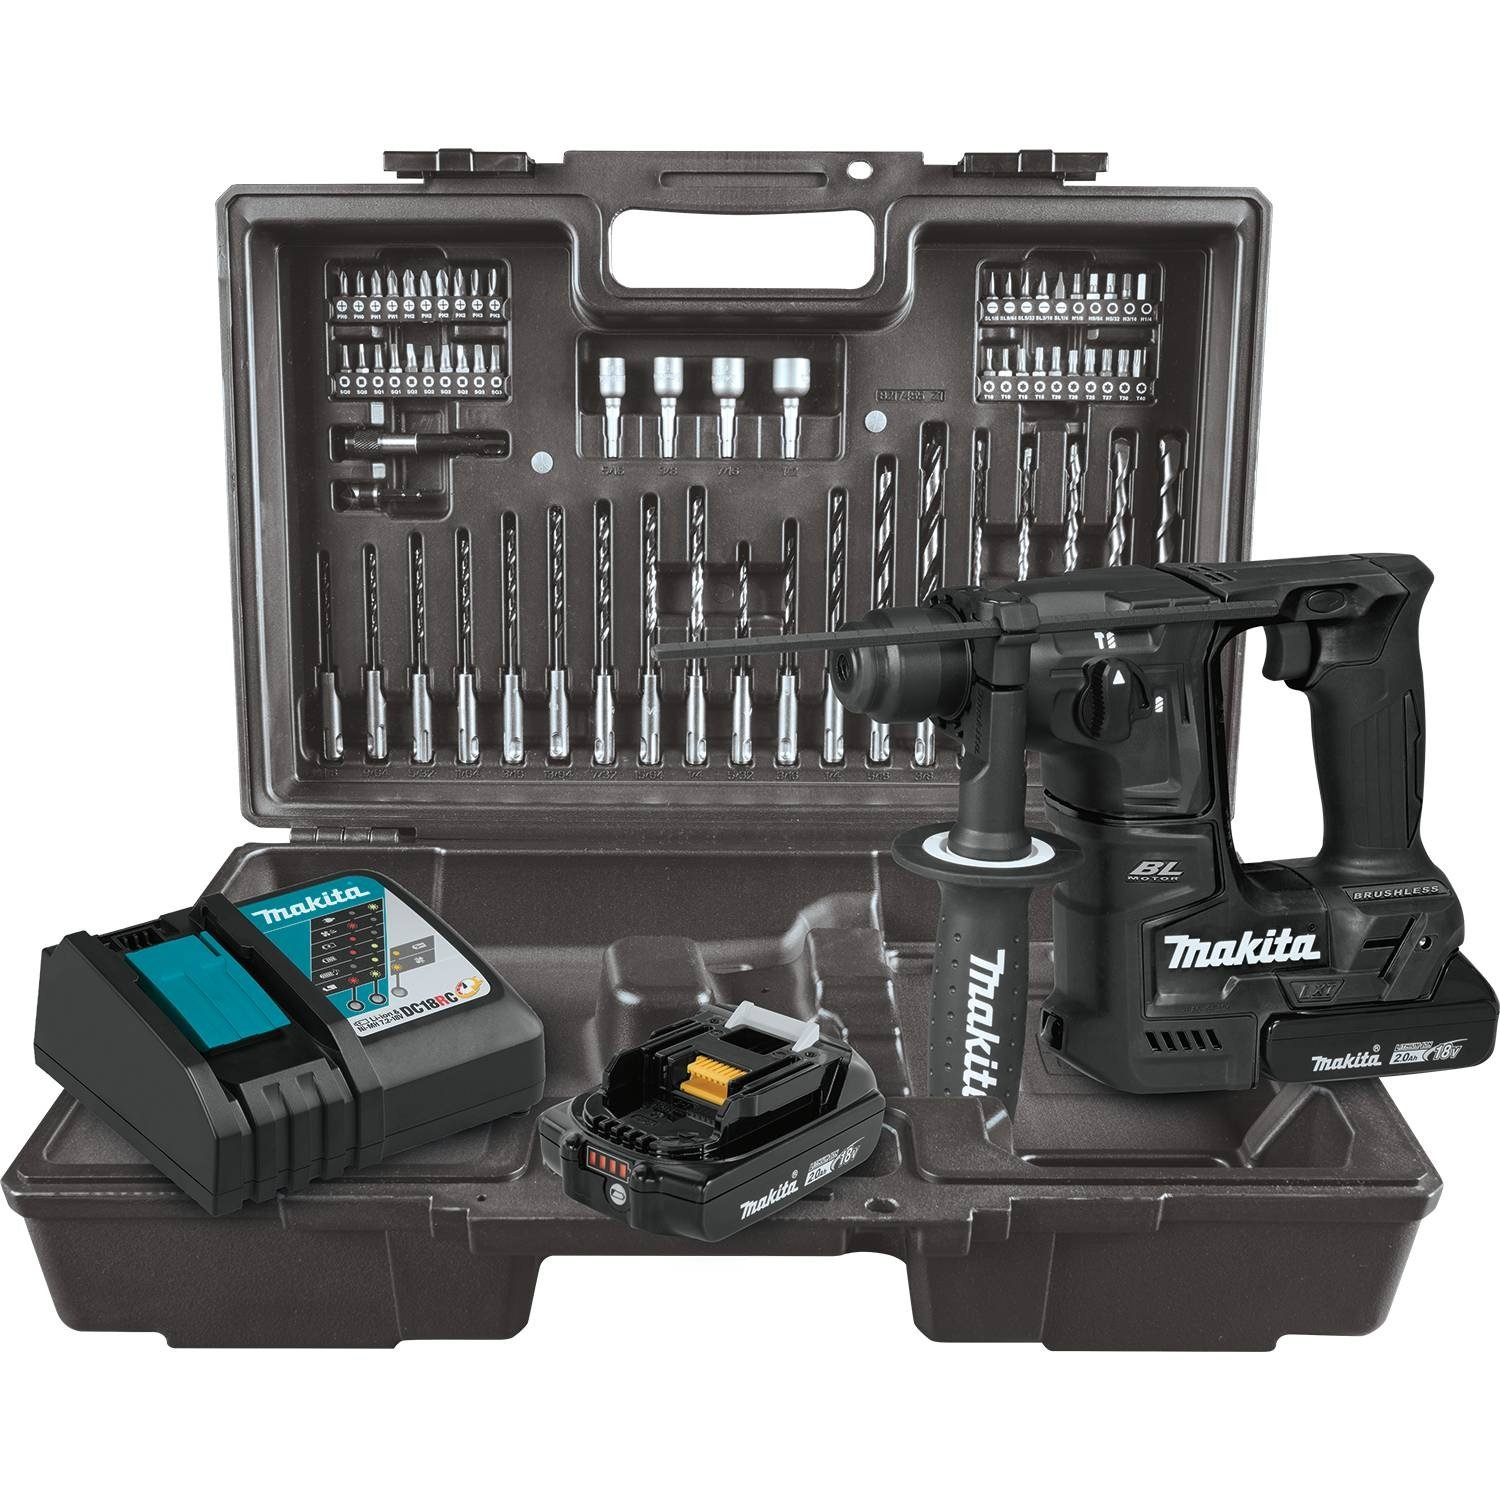 Makita XRH06RBX 18V LXT Lithium-Ion Sub-Compact Brushless Cordless 11/16'' Rotary Hammer Kit, accepts SDS-PLUS bits, 65 Pc. Accessory Set (2.0 Ah)